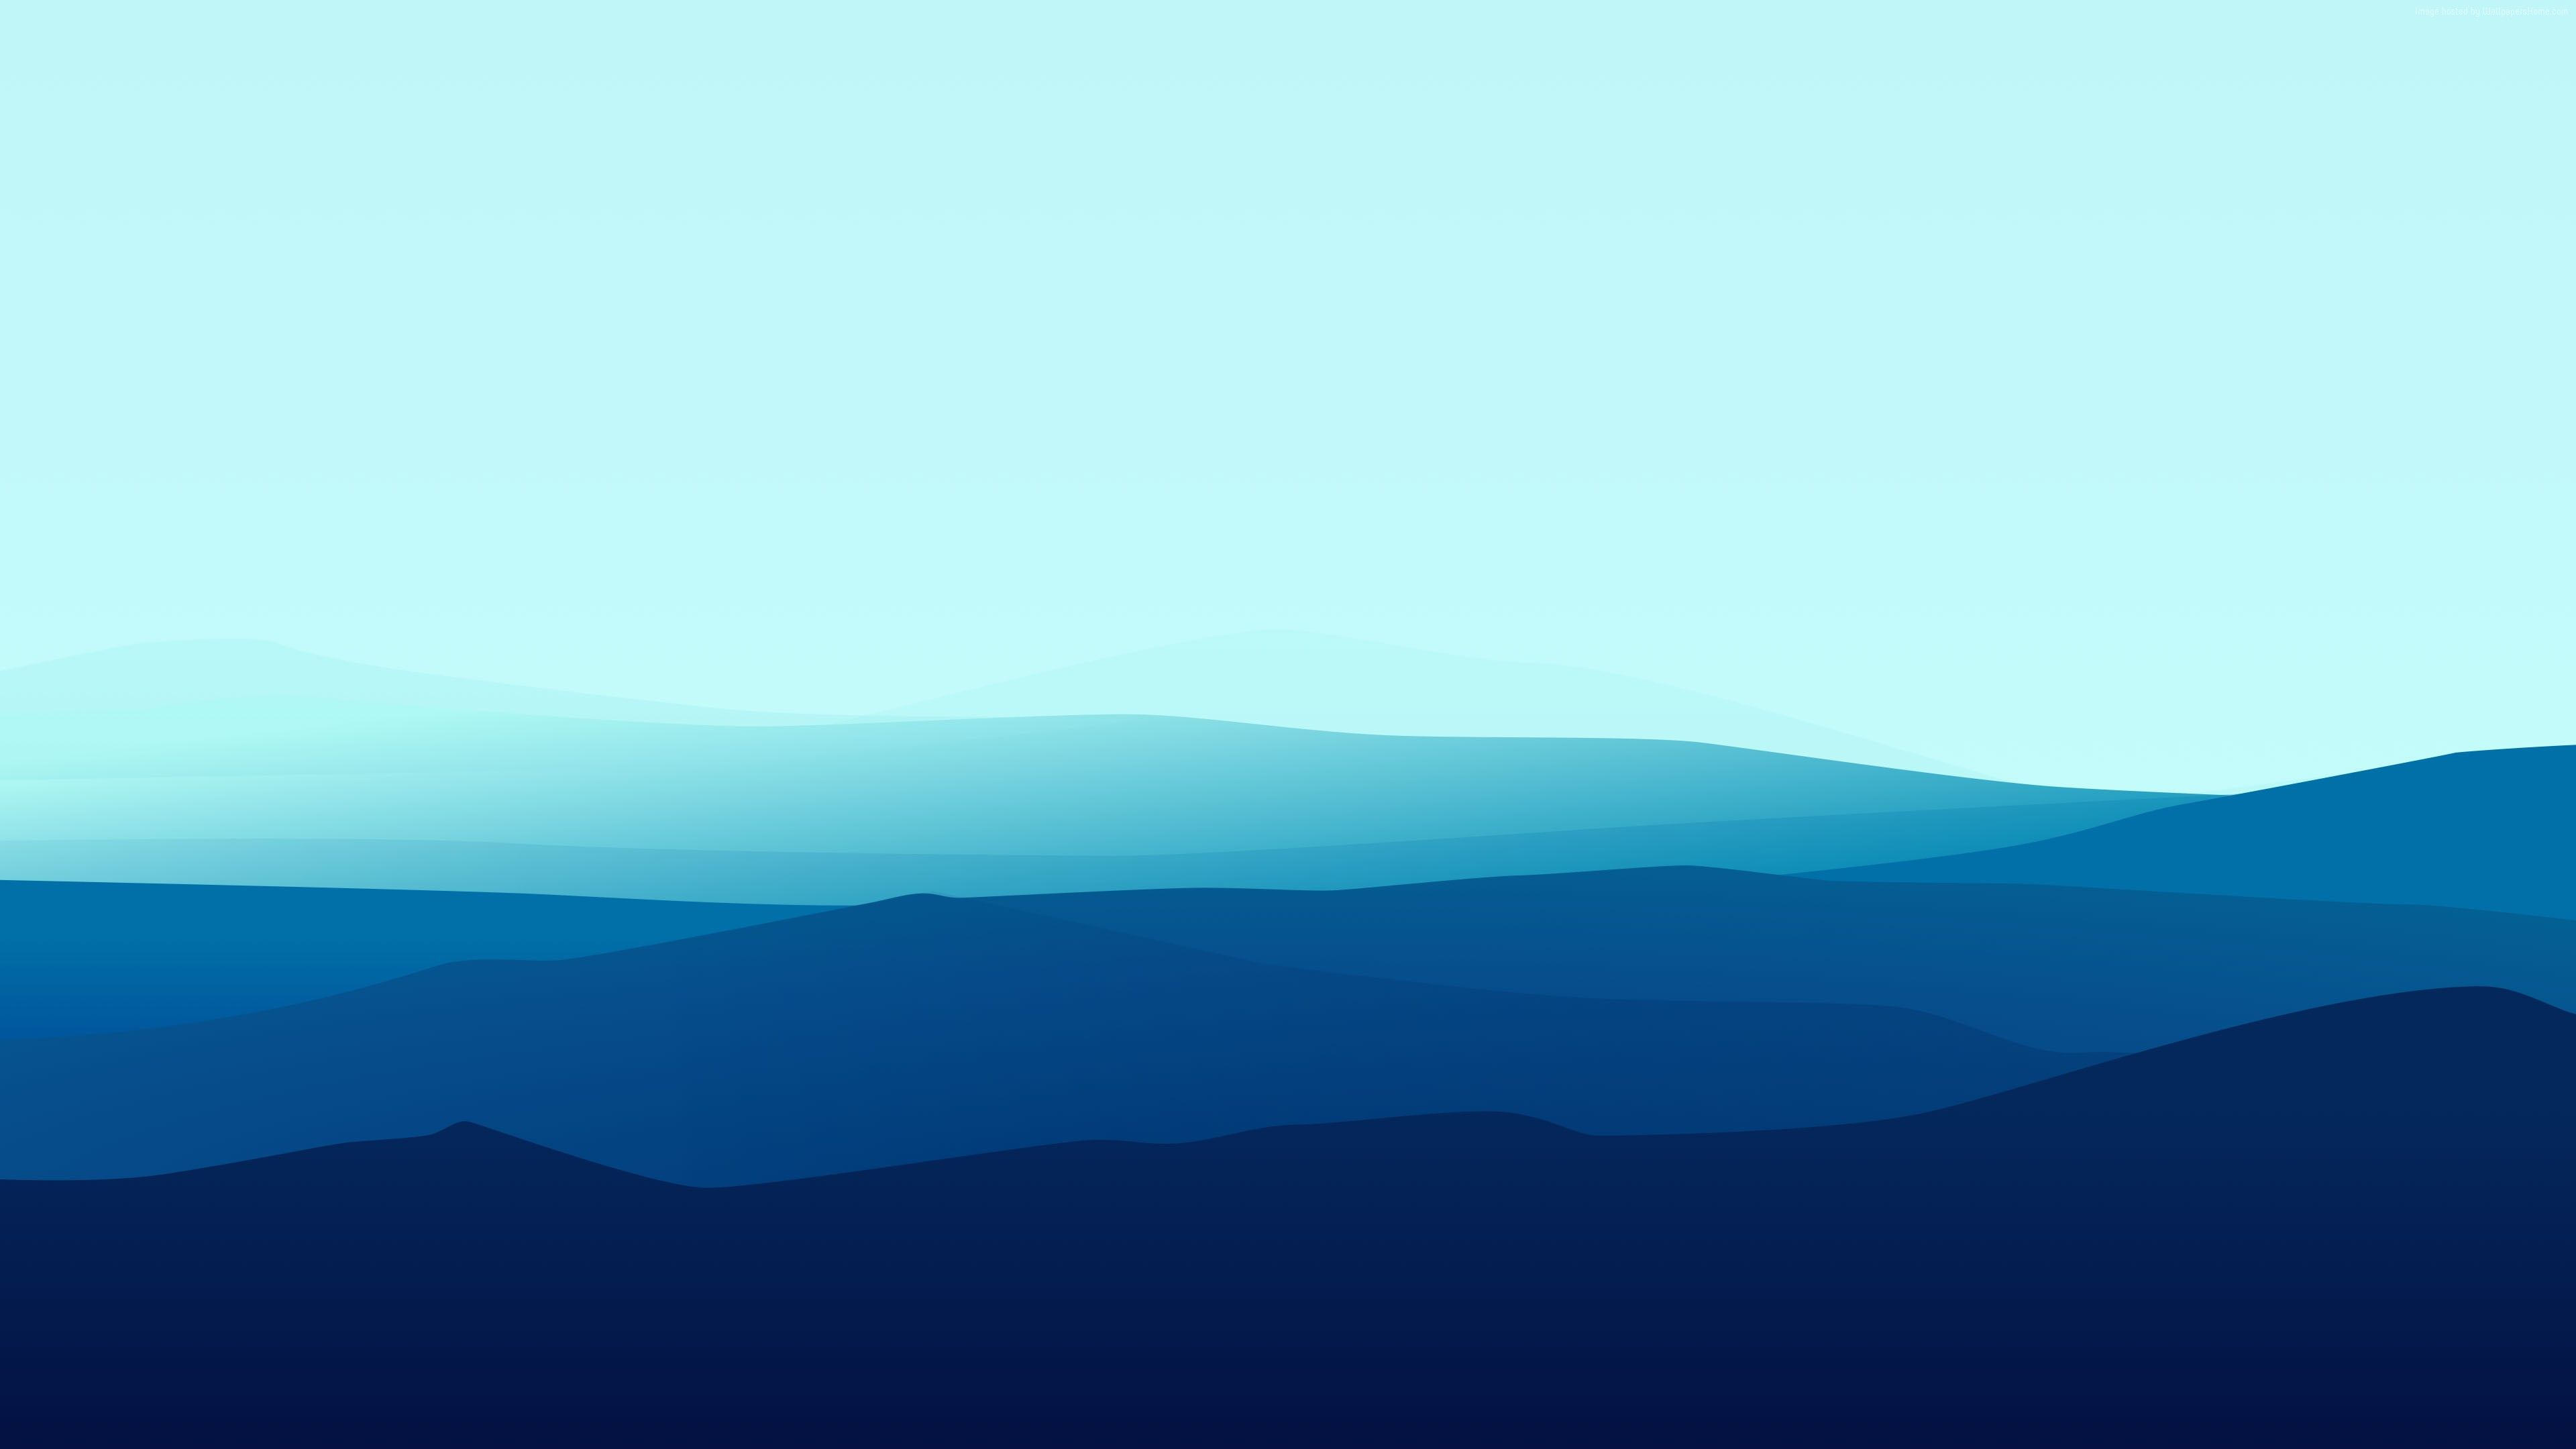 Blue 4k Wallpapers Top Free Blue 4k Backgrounds